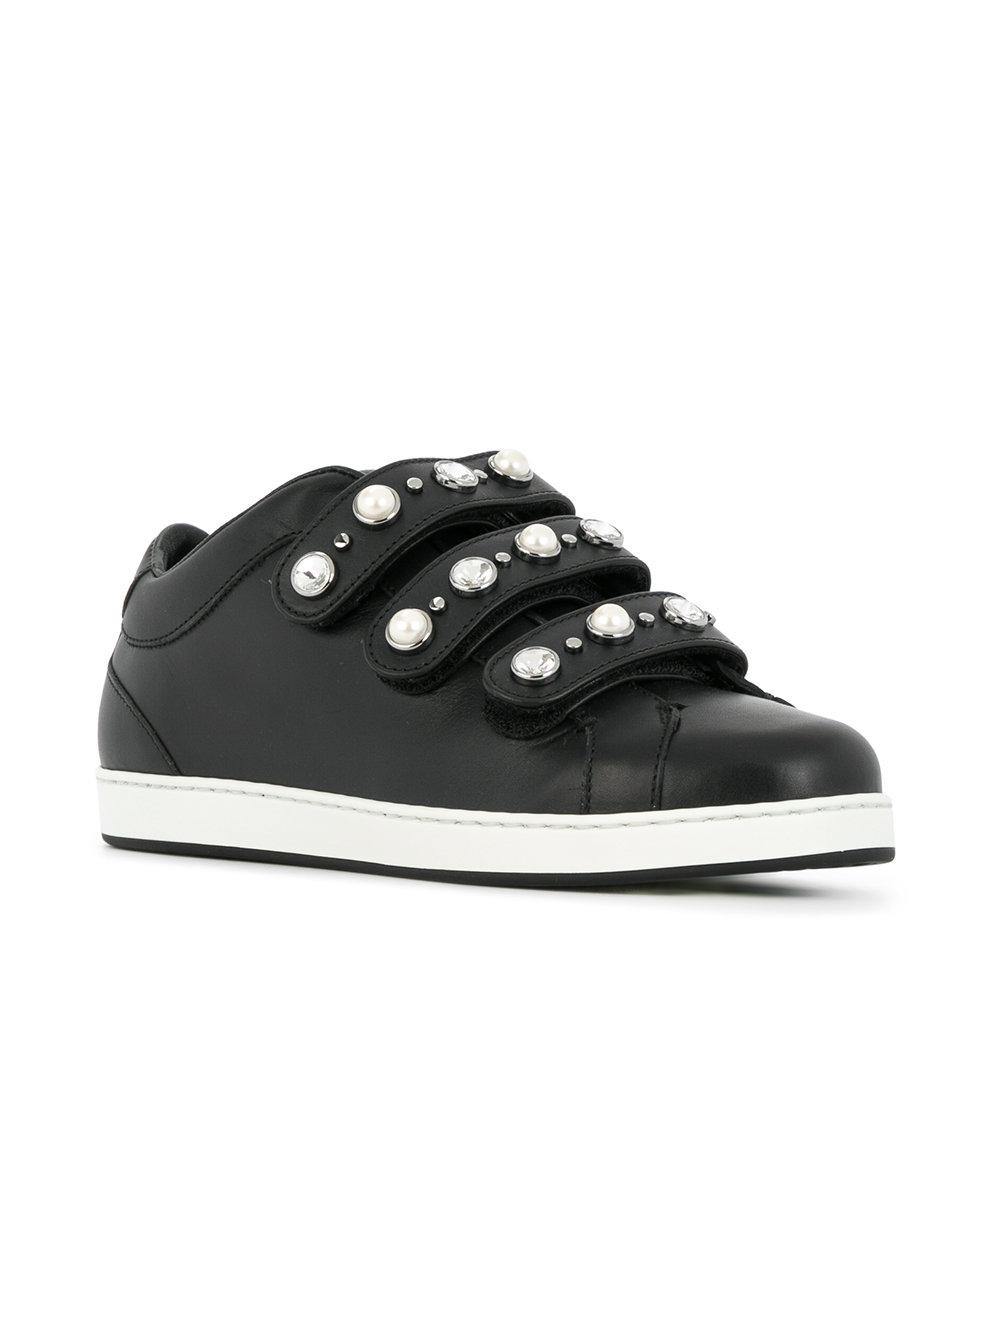 Jimmy Choo Leather Ny Sneakers in Black